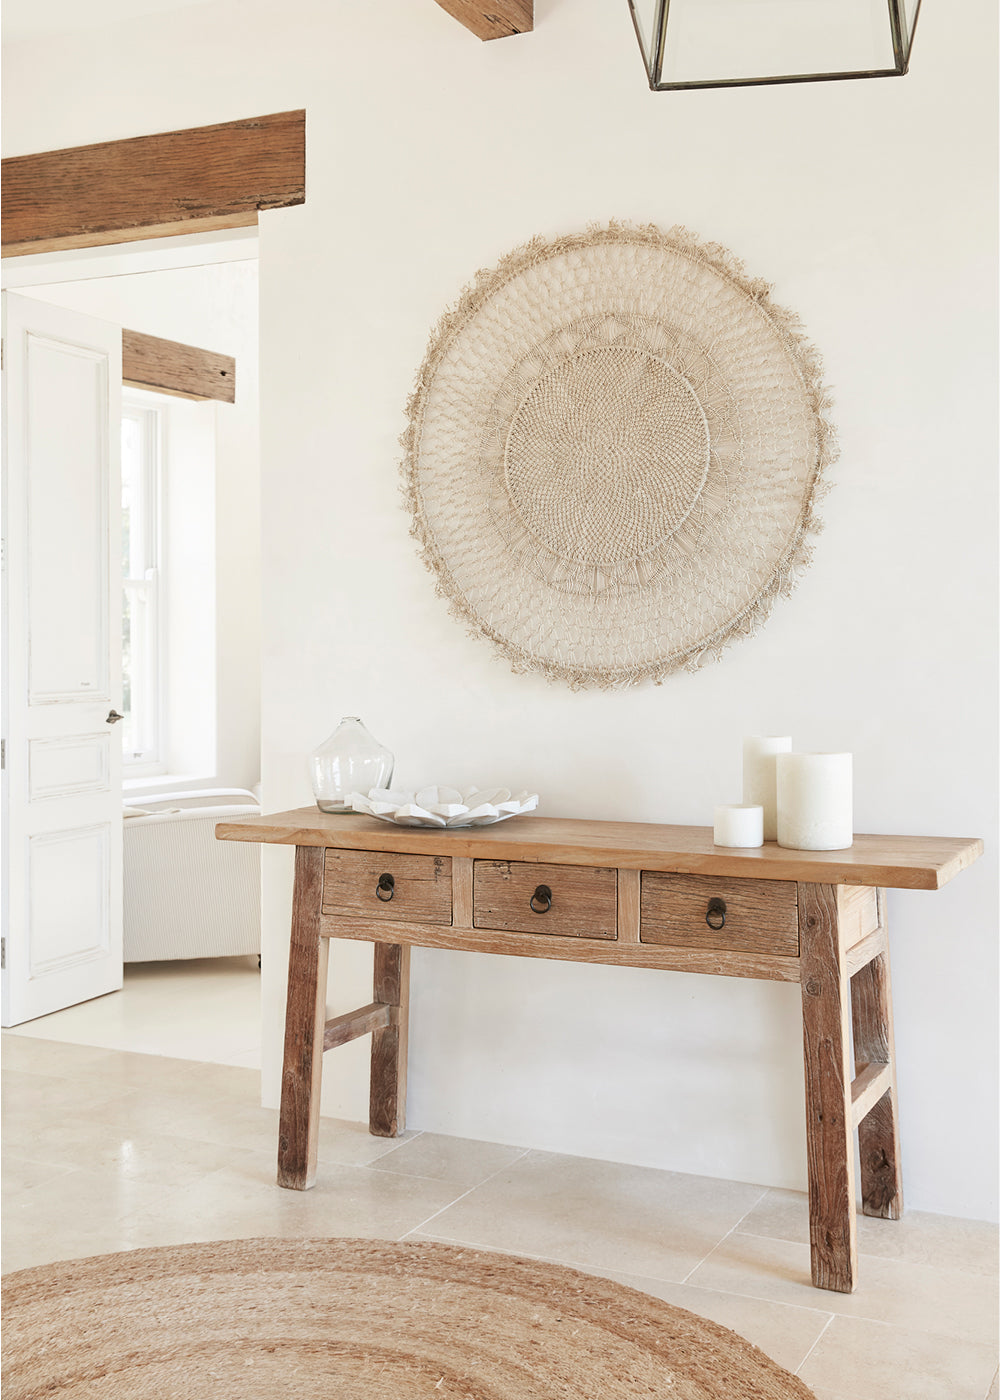 woven wall hanging - round handwoven mandala wall hanging on plain white wall with light wood console table in front of it.